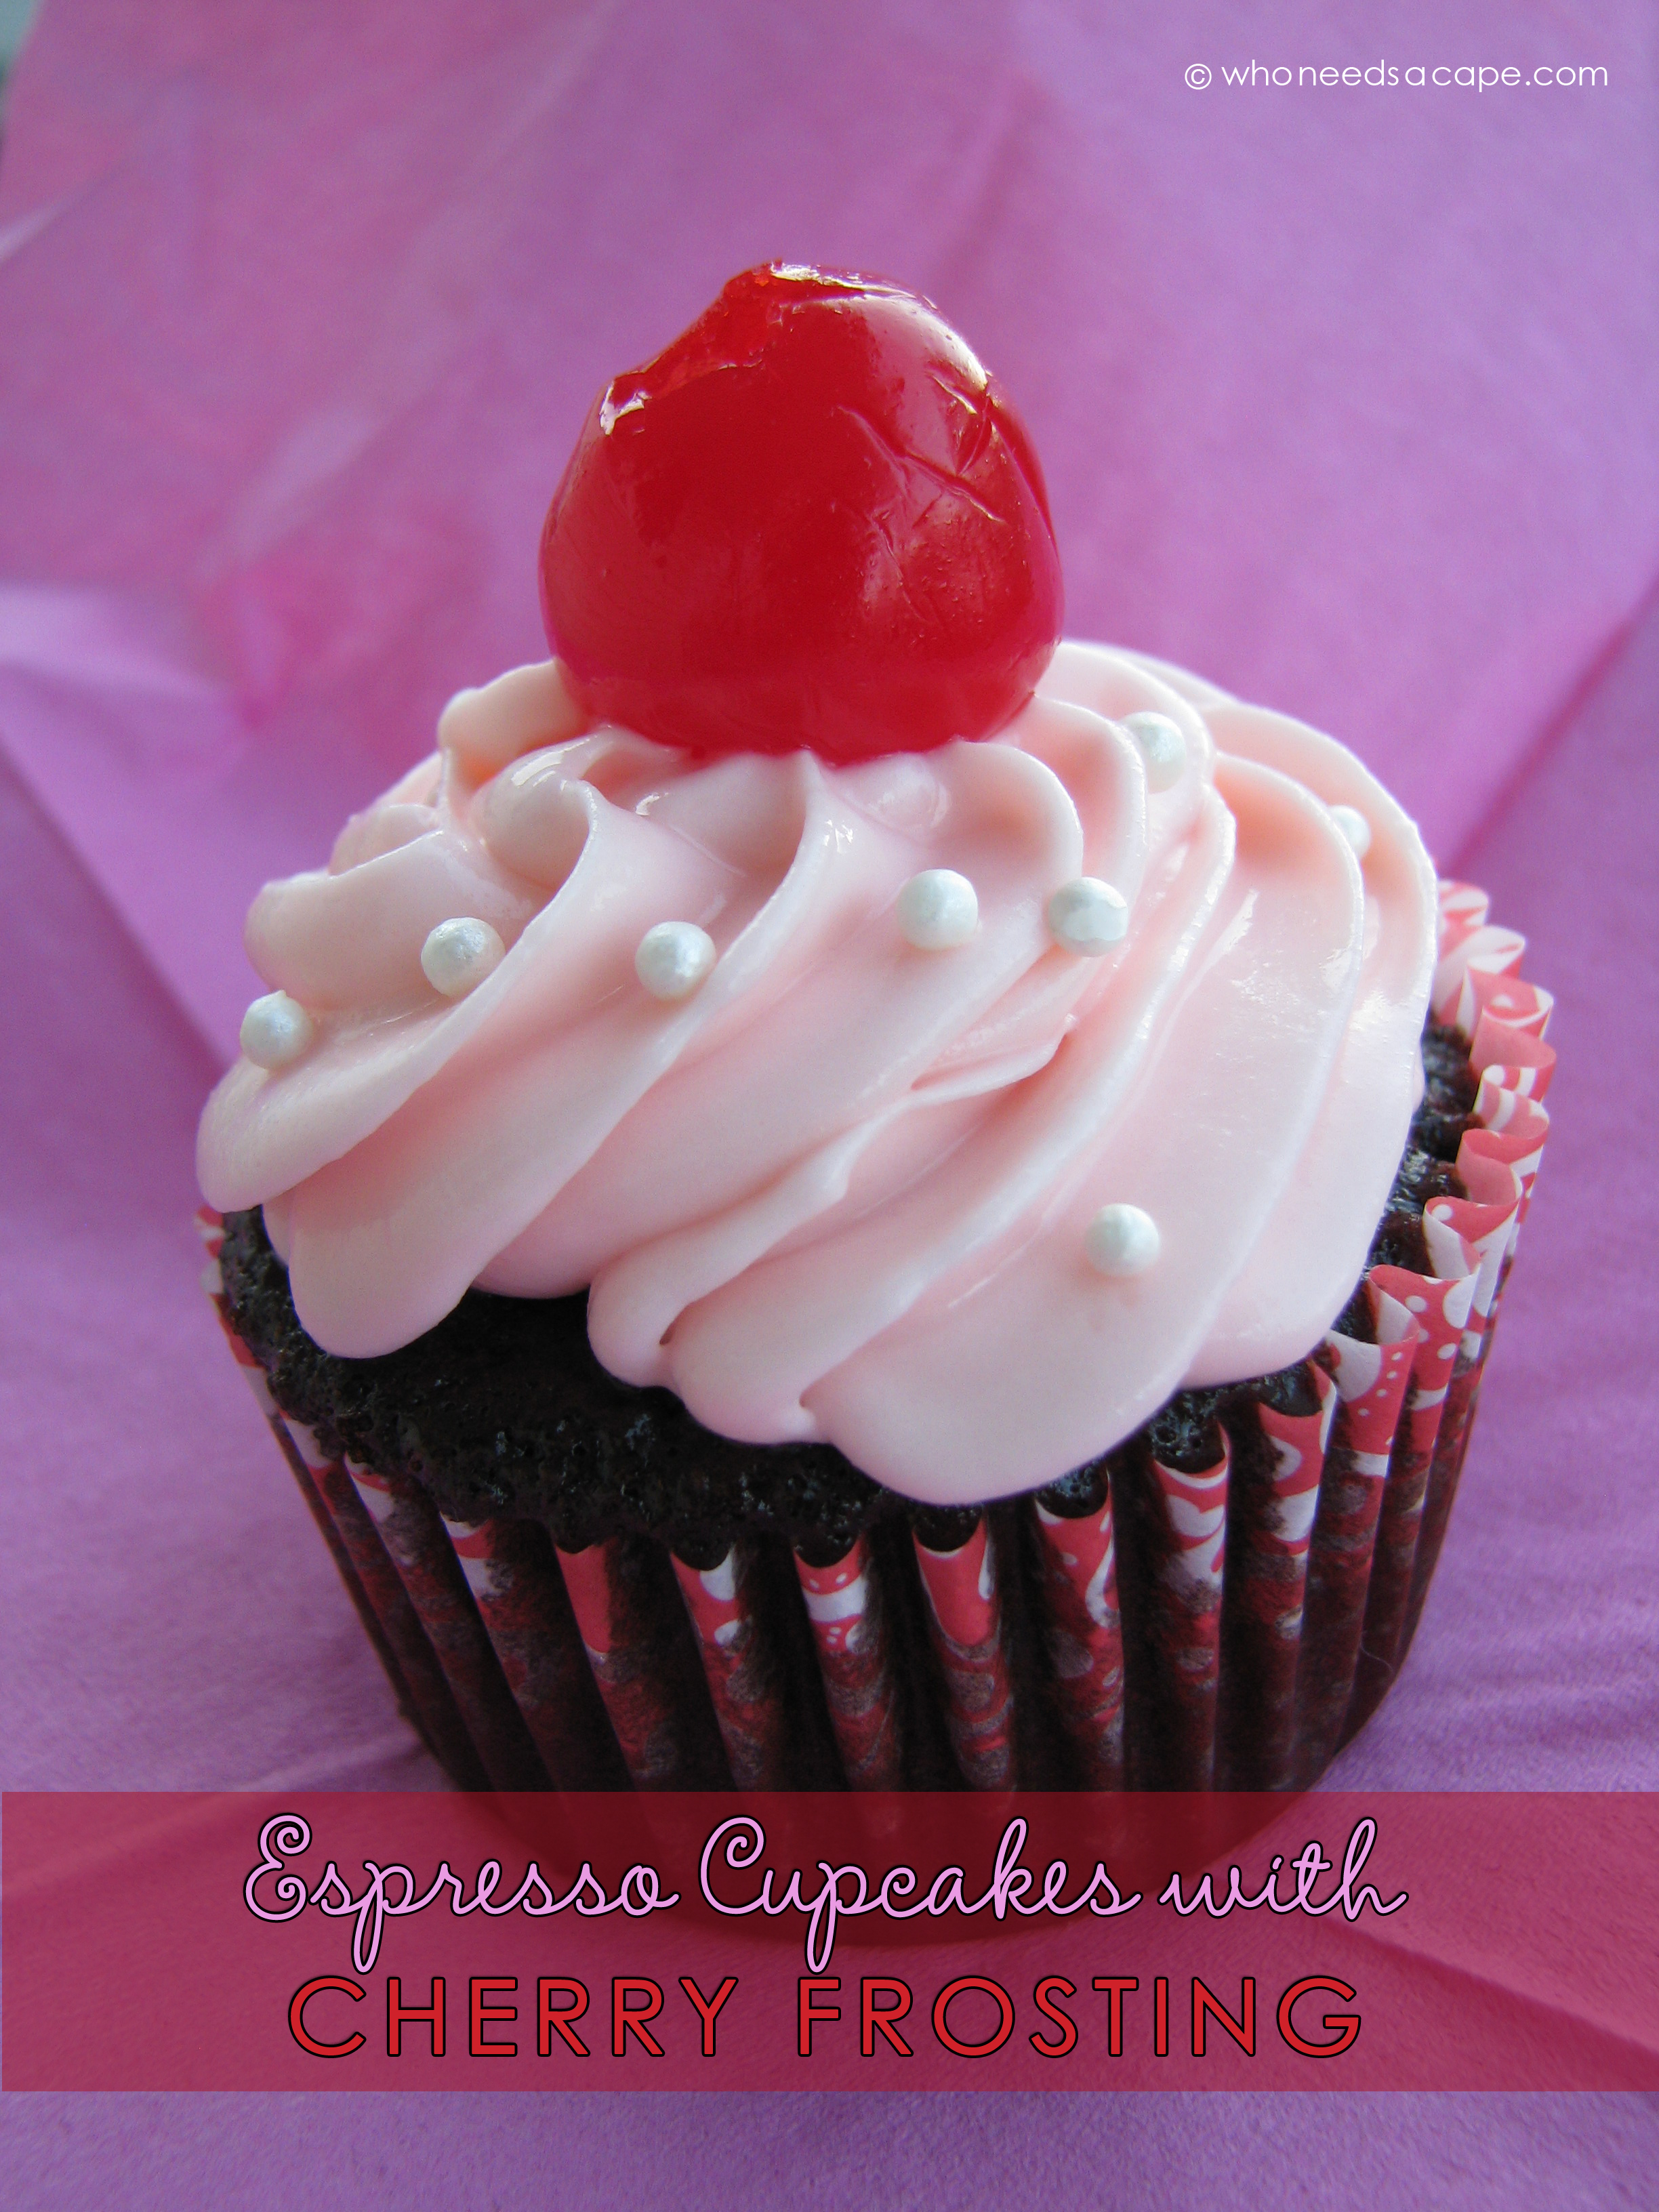 Espresso Cupcakes with Cherry Frosting